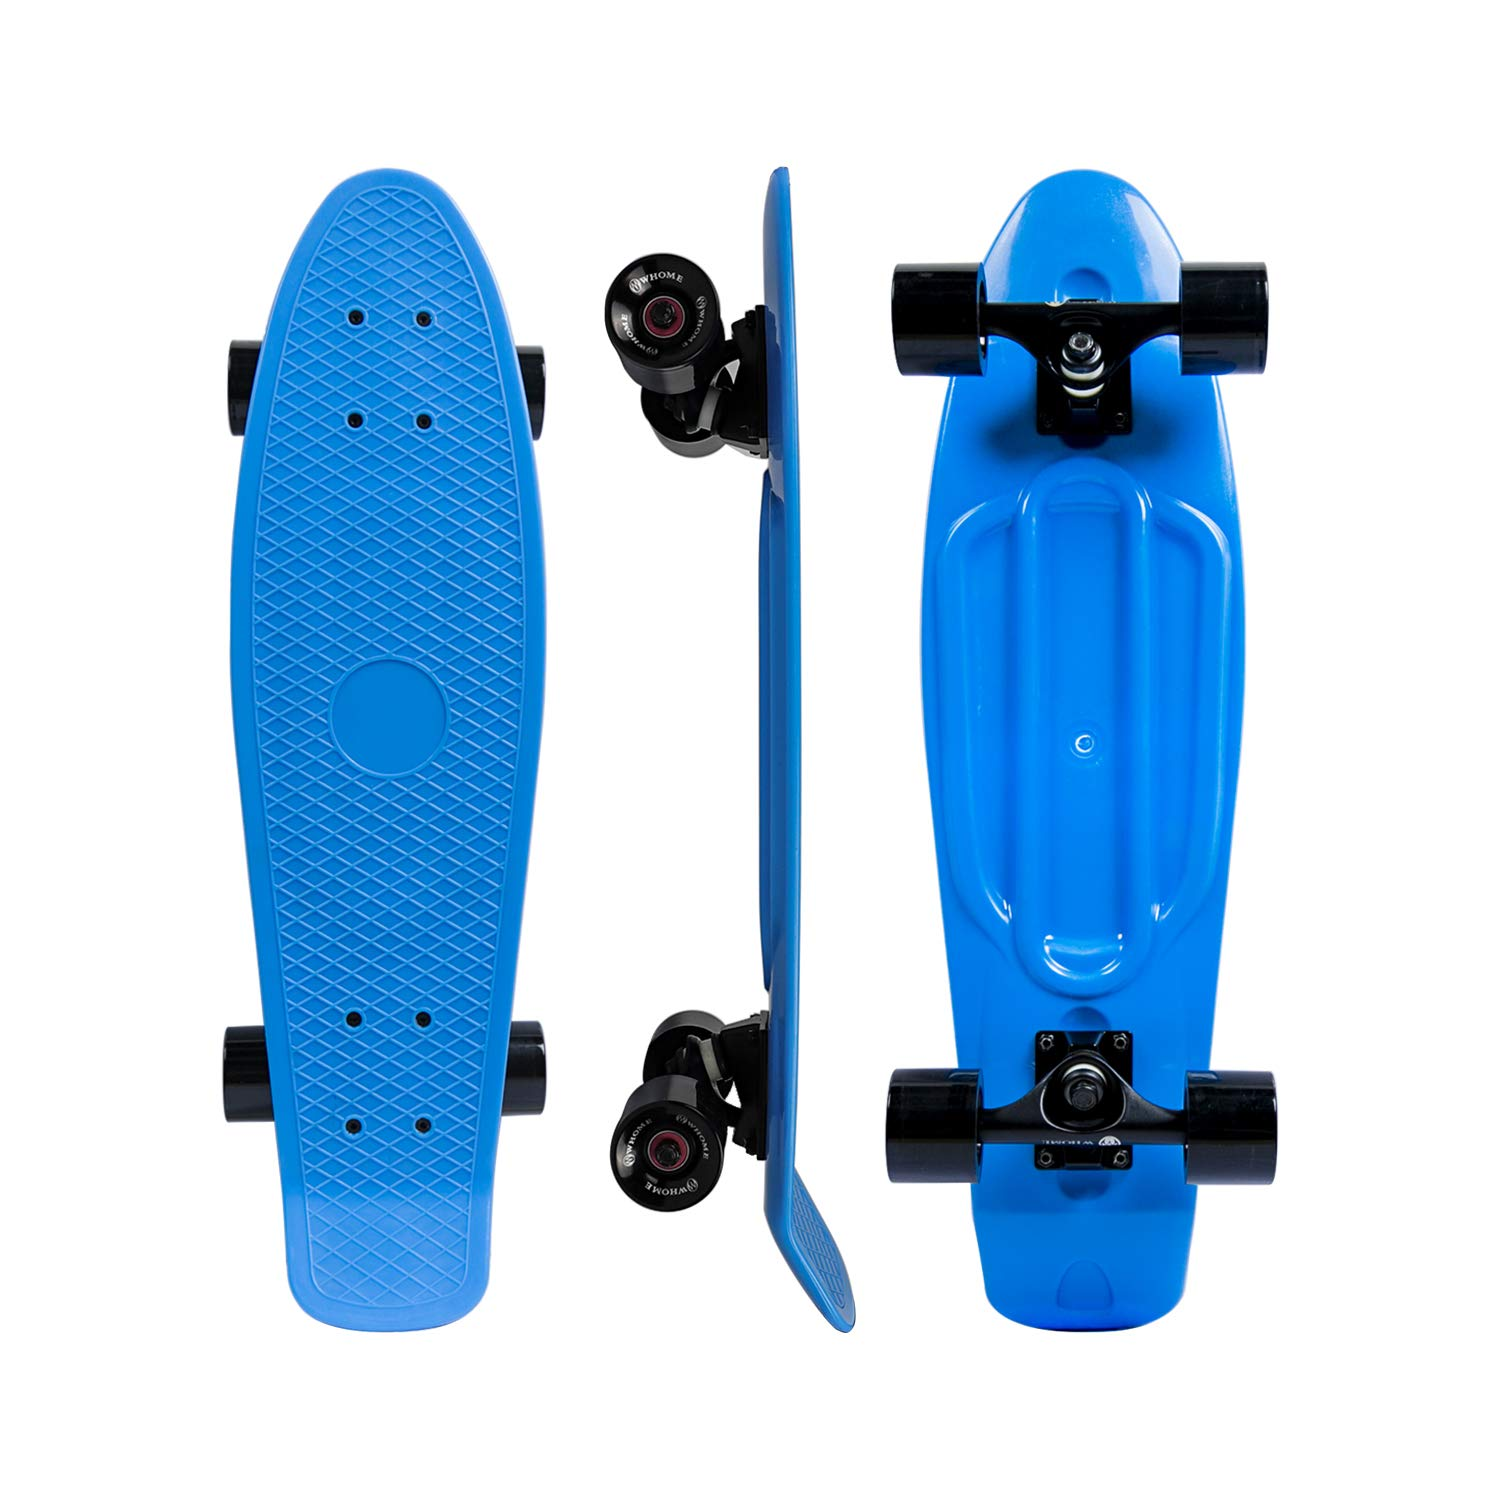 SHINPORT Cruiser Skateboard 27 Inch Complete for Adults Youth Kids Beginners Commuting Rolling Cruising Campus Skateboard Include T-Tool